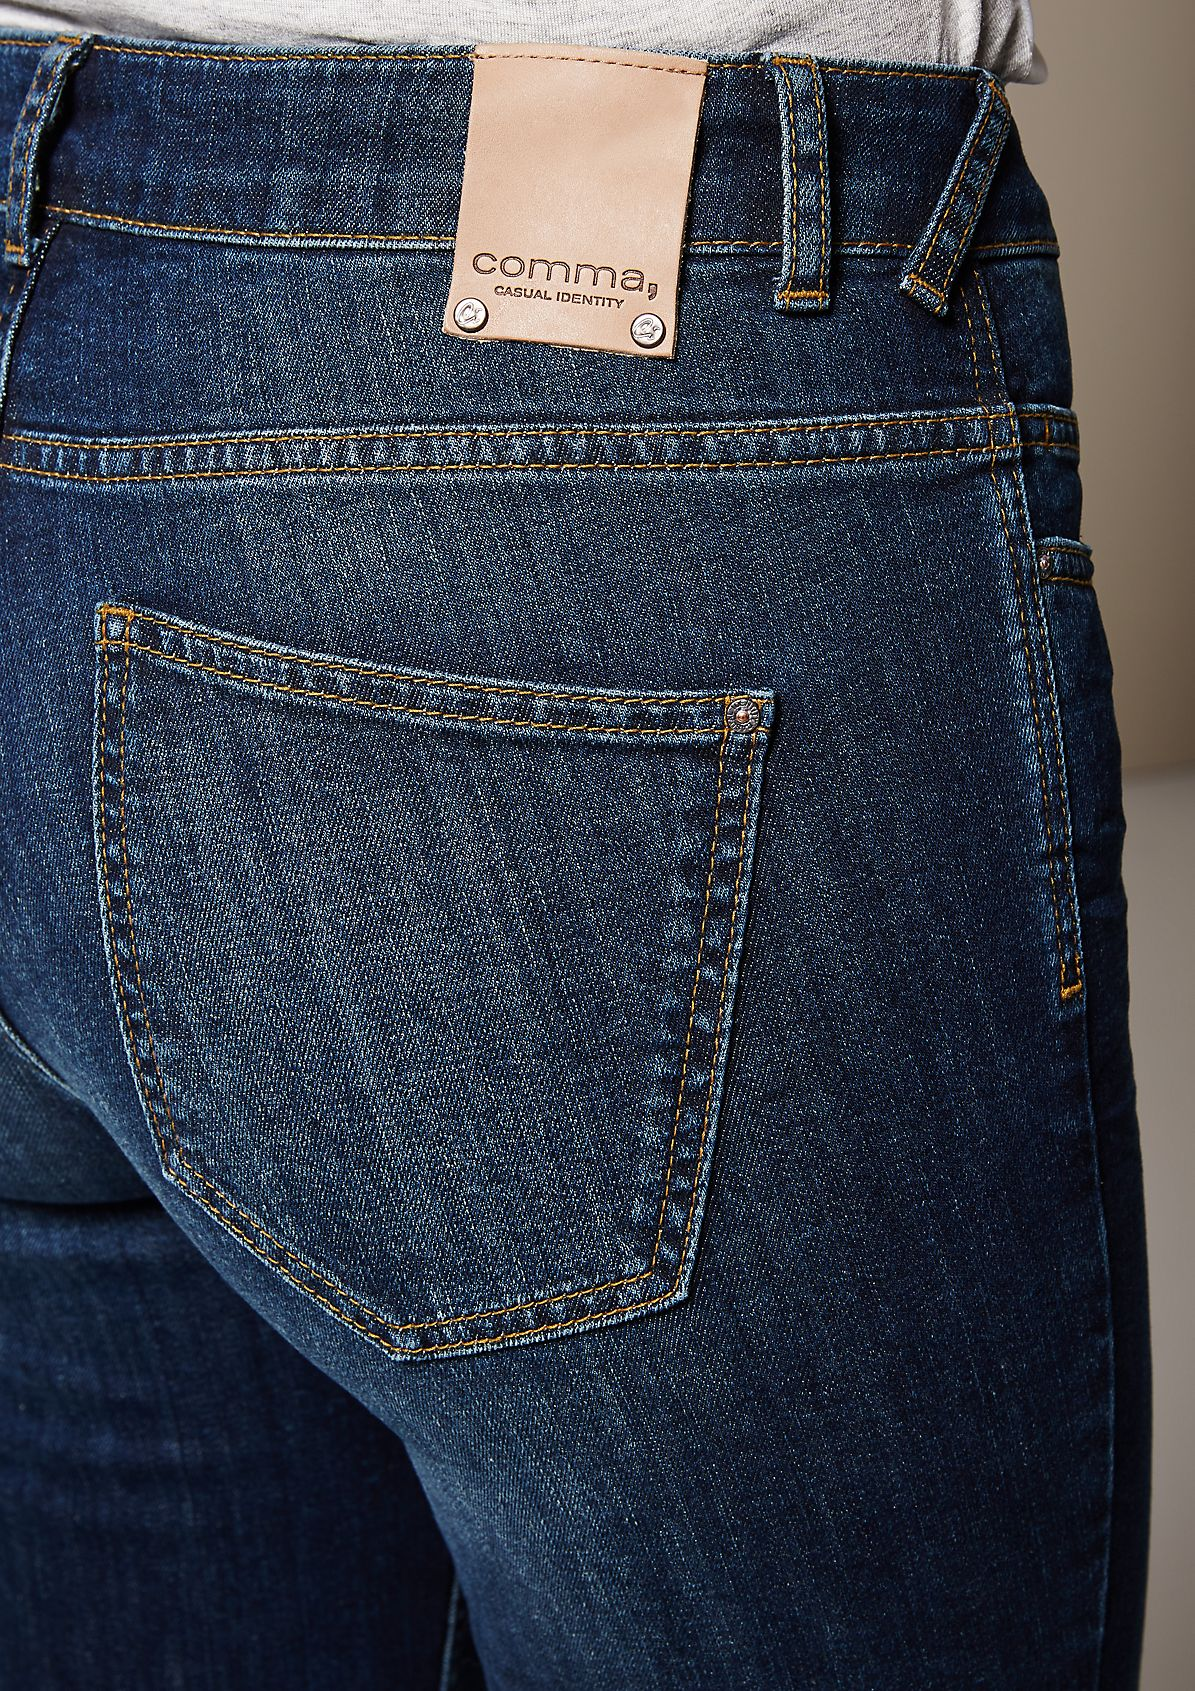 Classic jeans with a cool vintage finish from s.Oliver